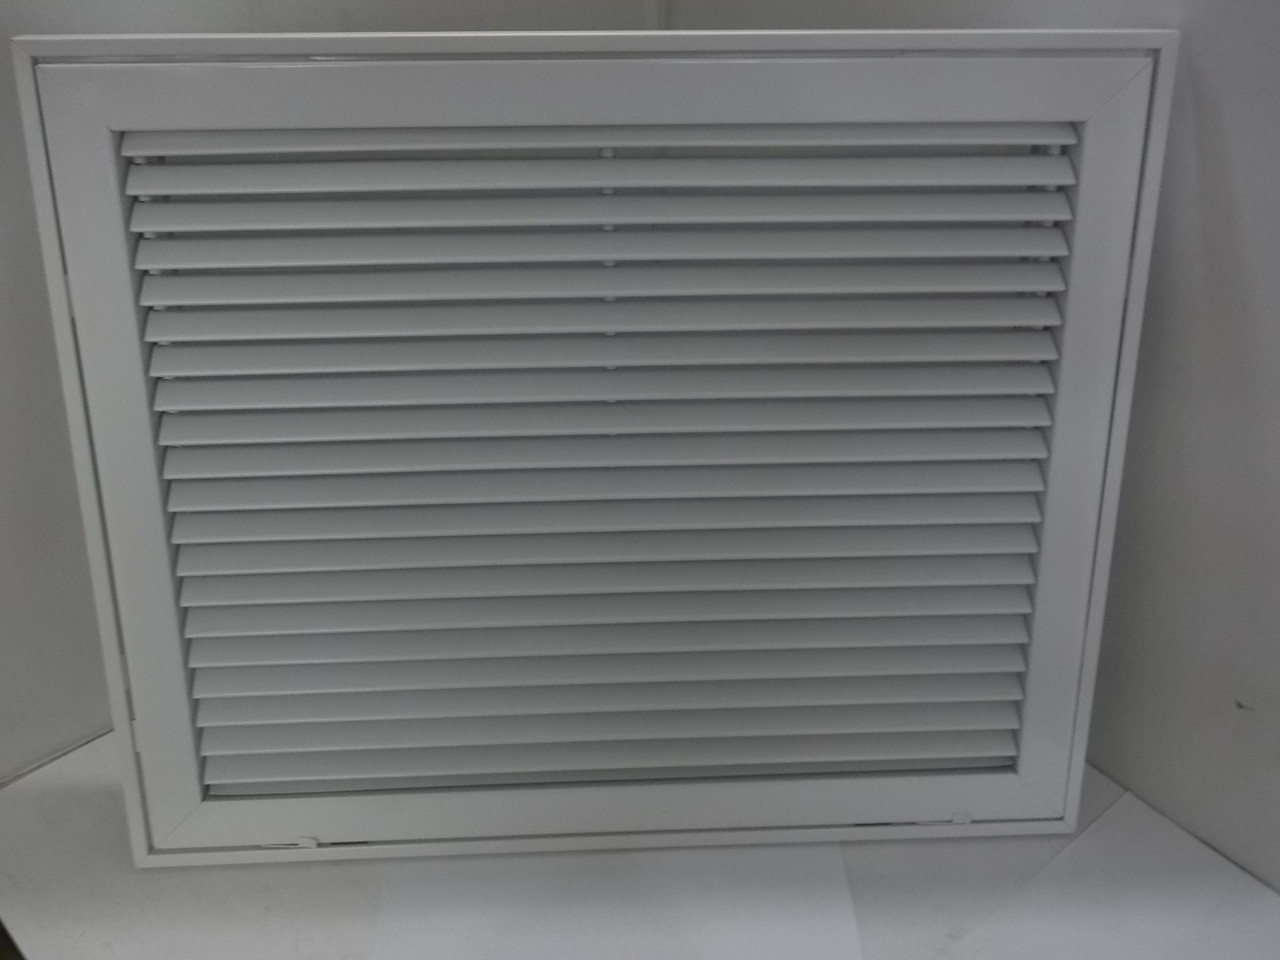 American Metals S90HFF 25 X 14 Commercial Return Air Filter Grille For 1